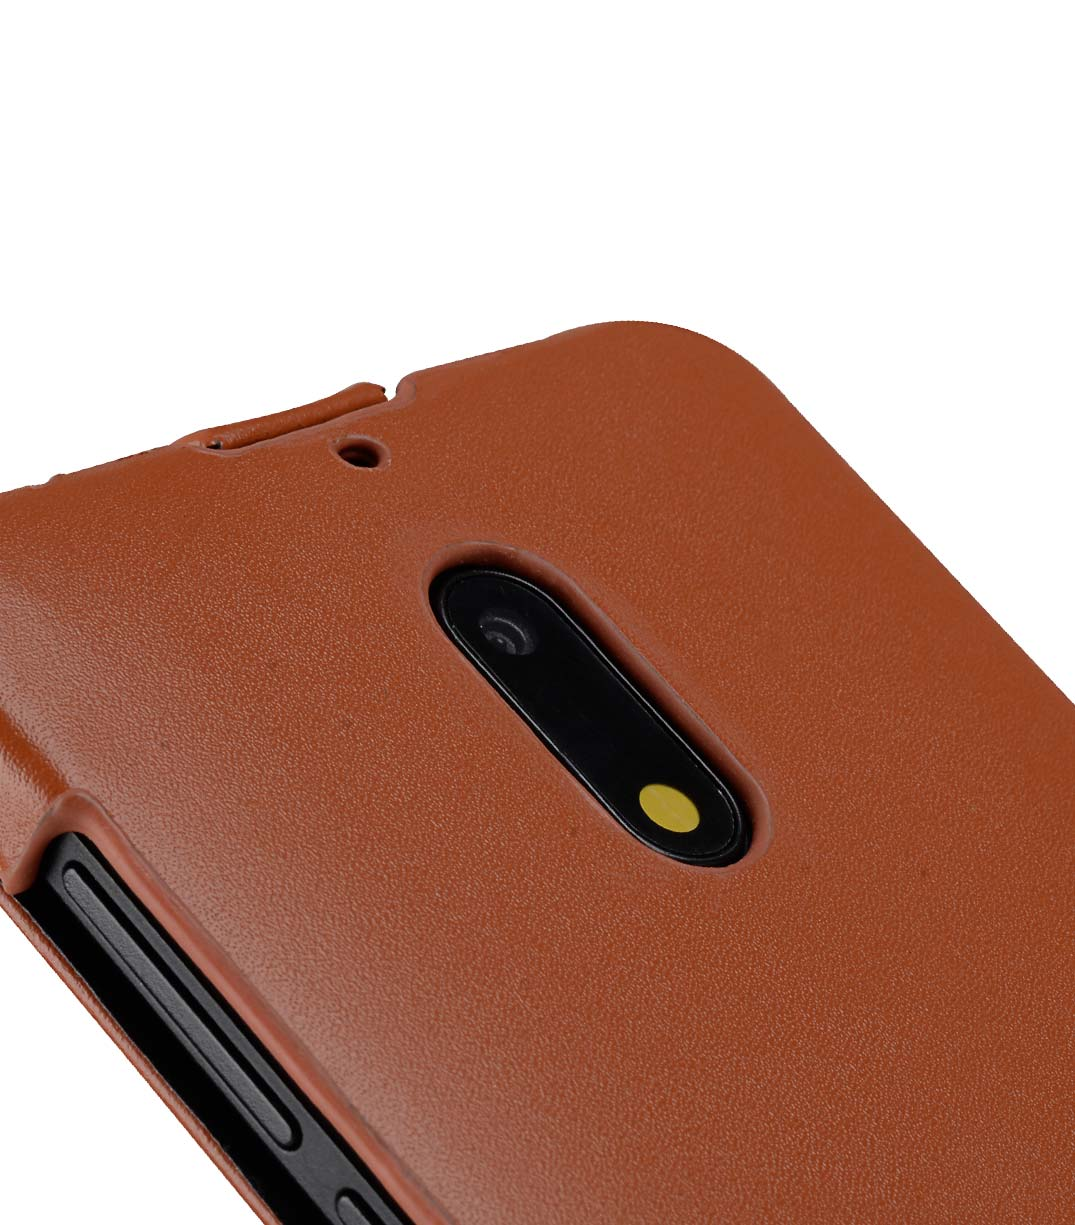 Premium Leather Case for Nokia 6 - Jacka Type (Brown CH)